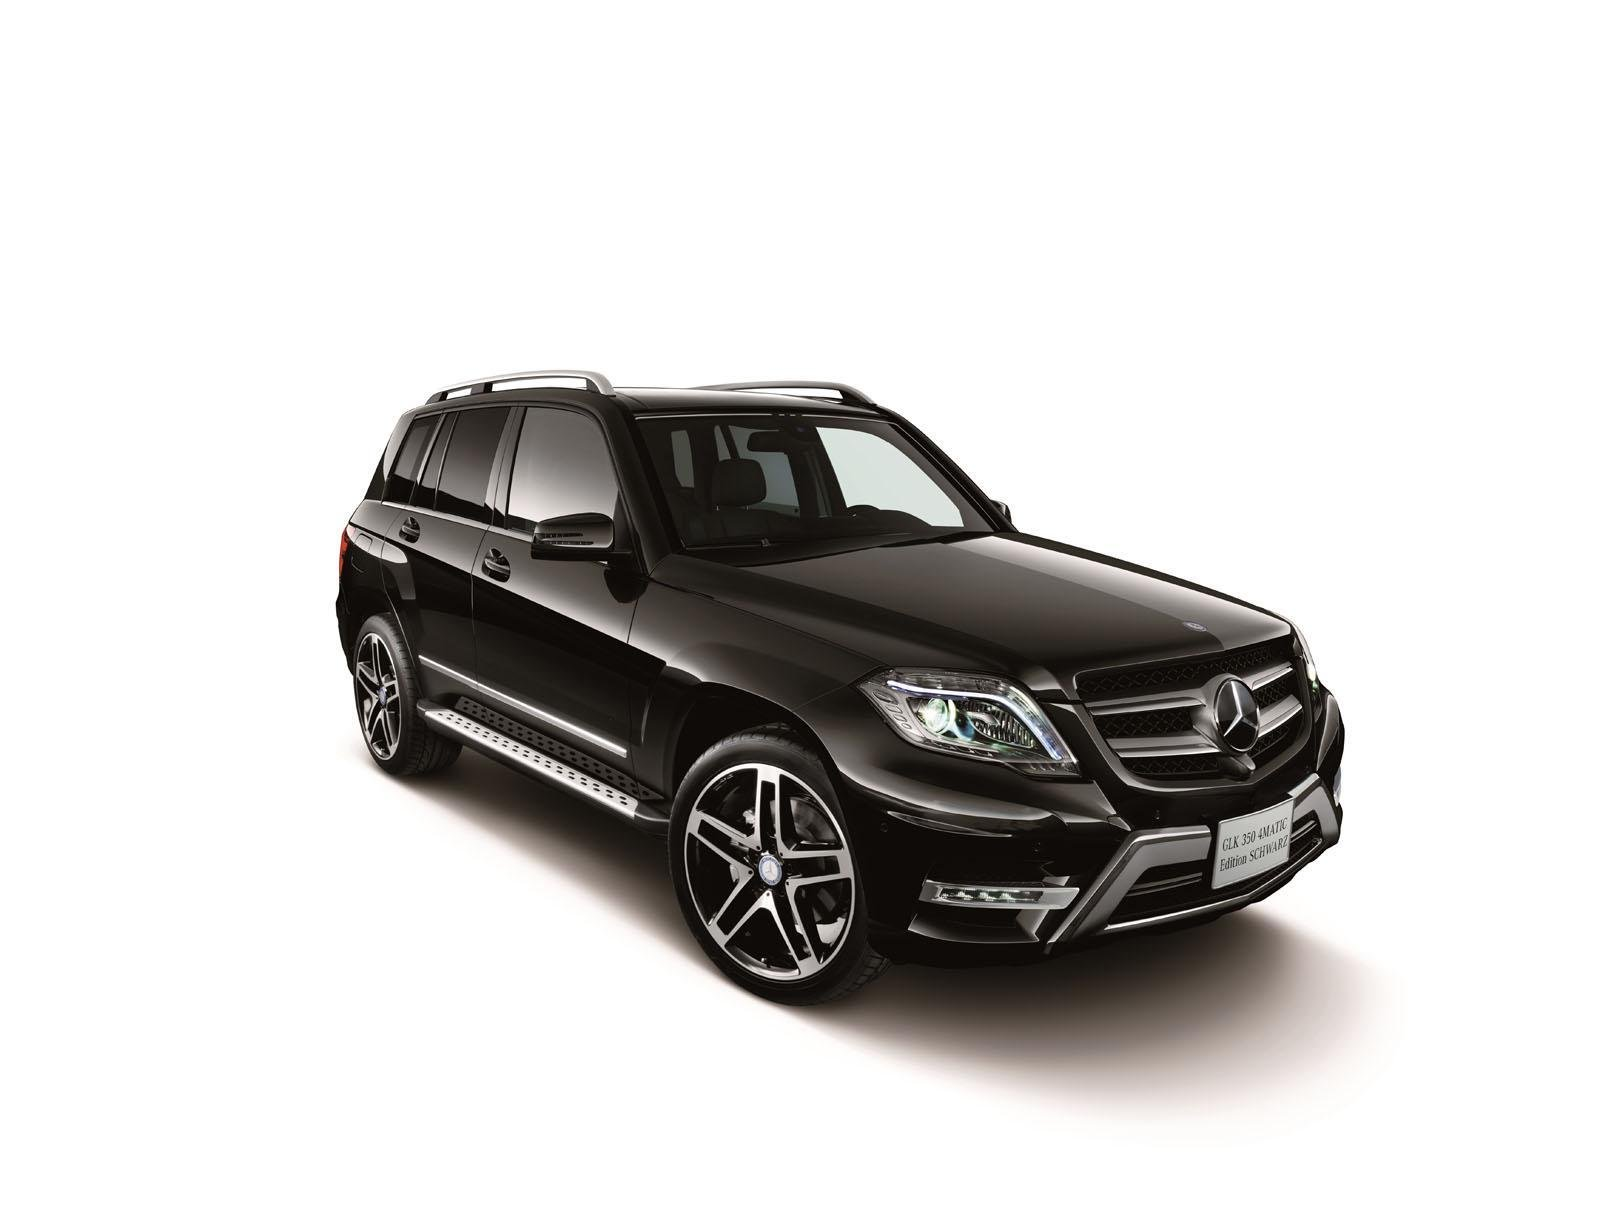 2013 mercedes glk 350 4matic schwarz edition review top speed. Black Bedroom Furniture Sets. Home Design Ideas